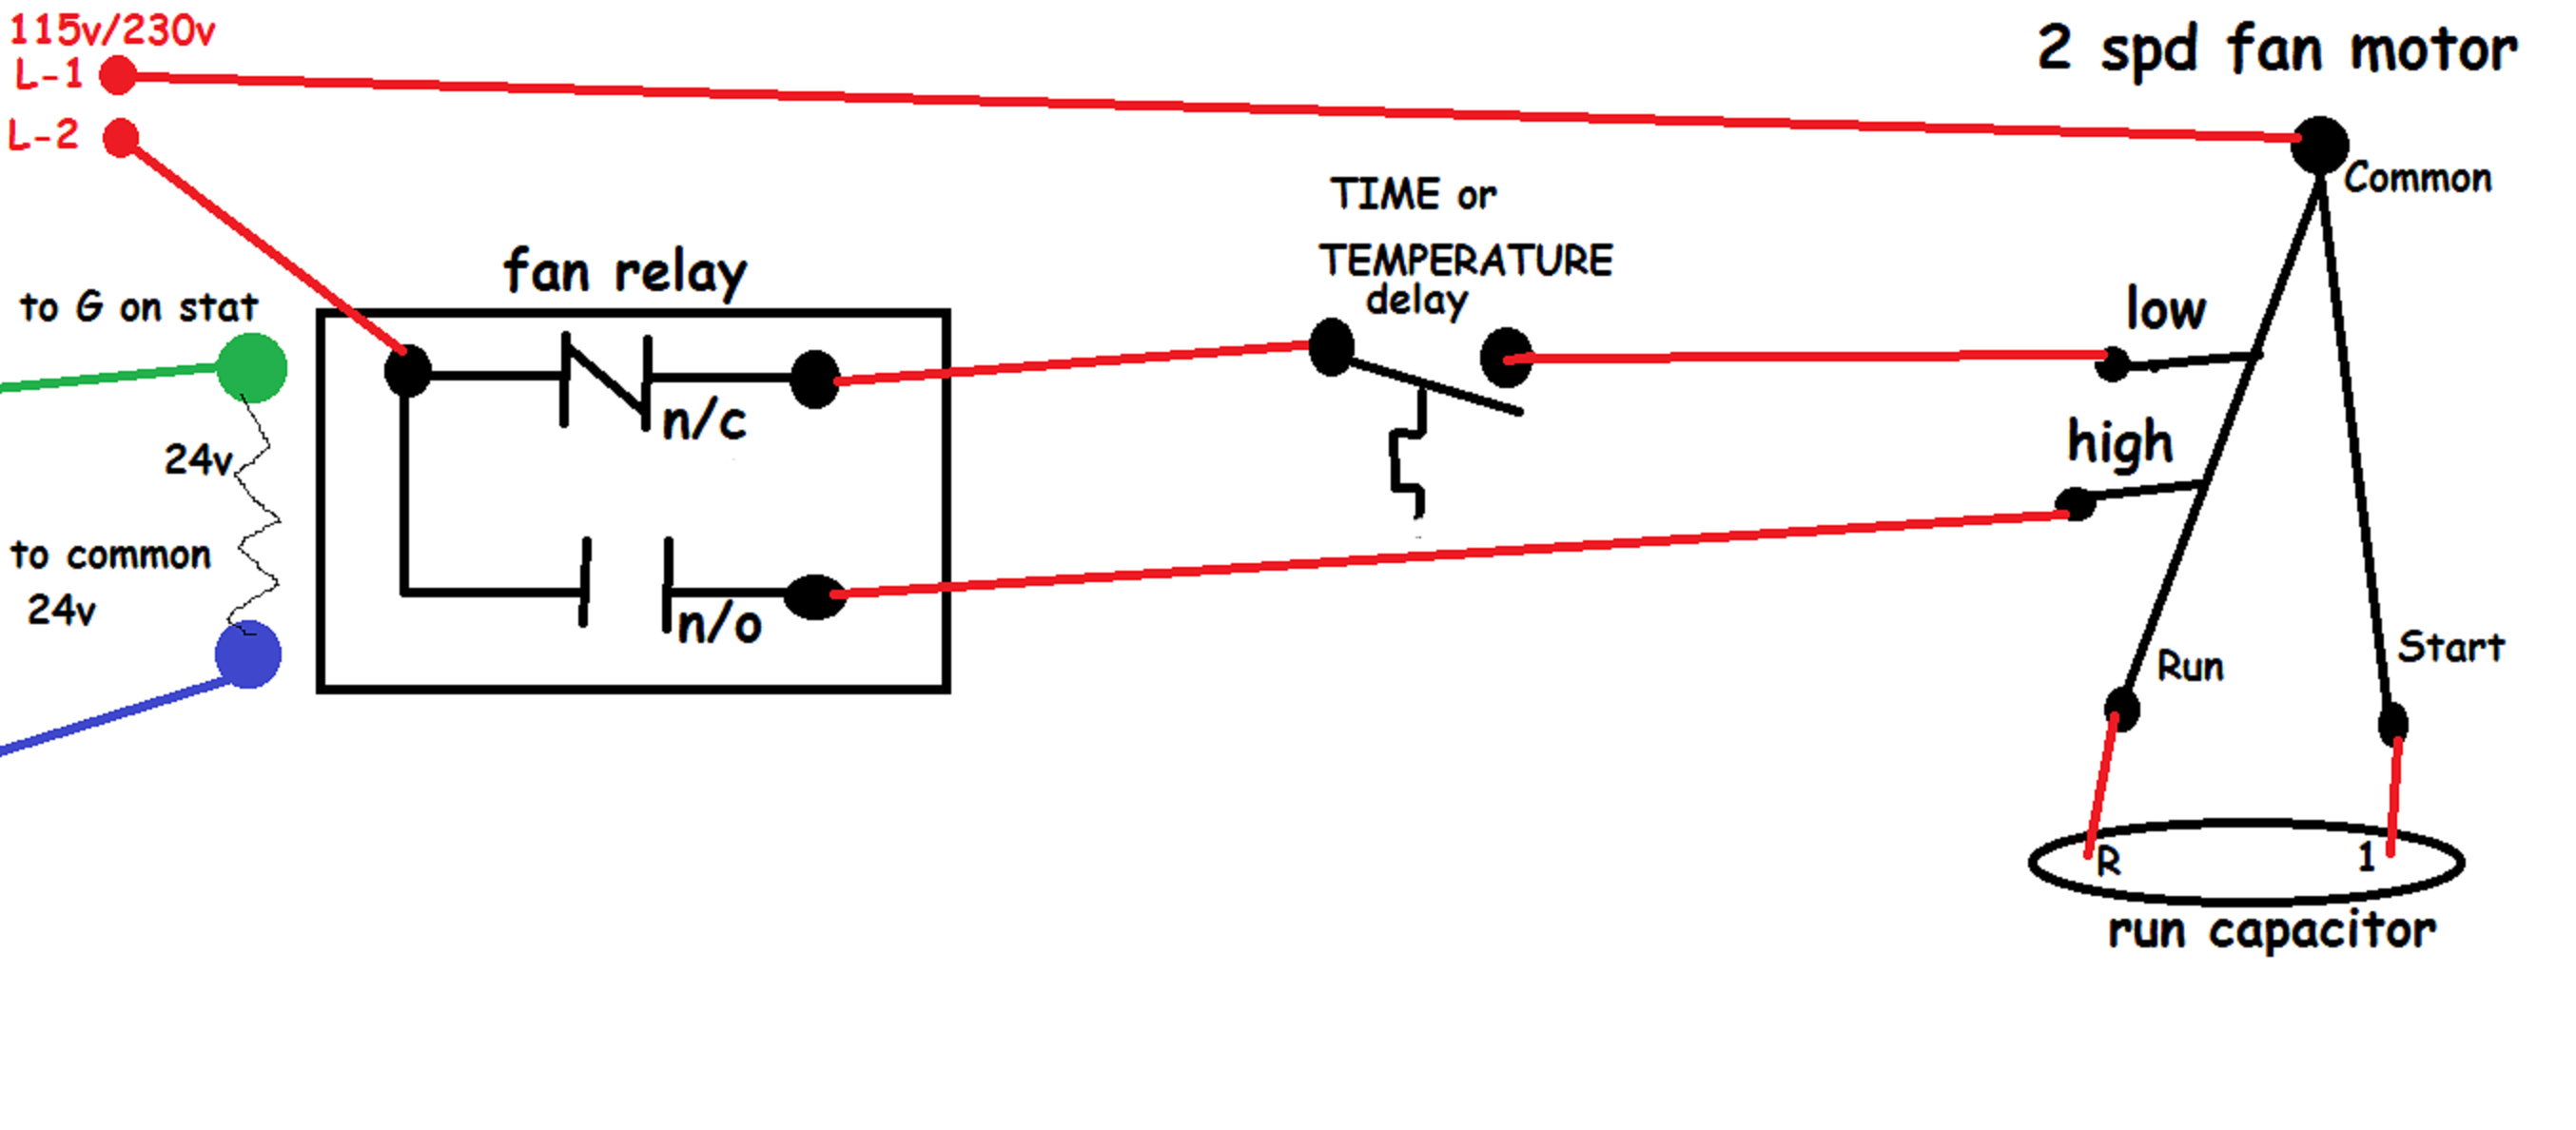 hight resolution of unique fan relay wiring diagram hvac diagram diagramsampleunique fan relay wiring diagram hvac diagram diagramsample diagramtemplate